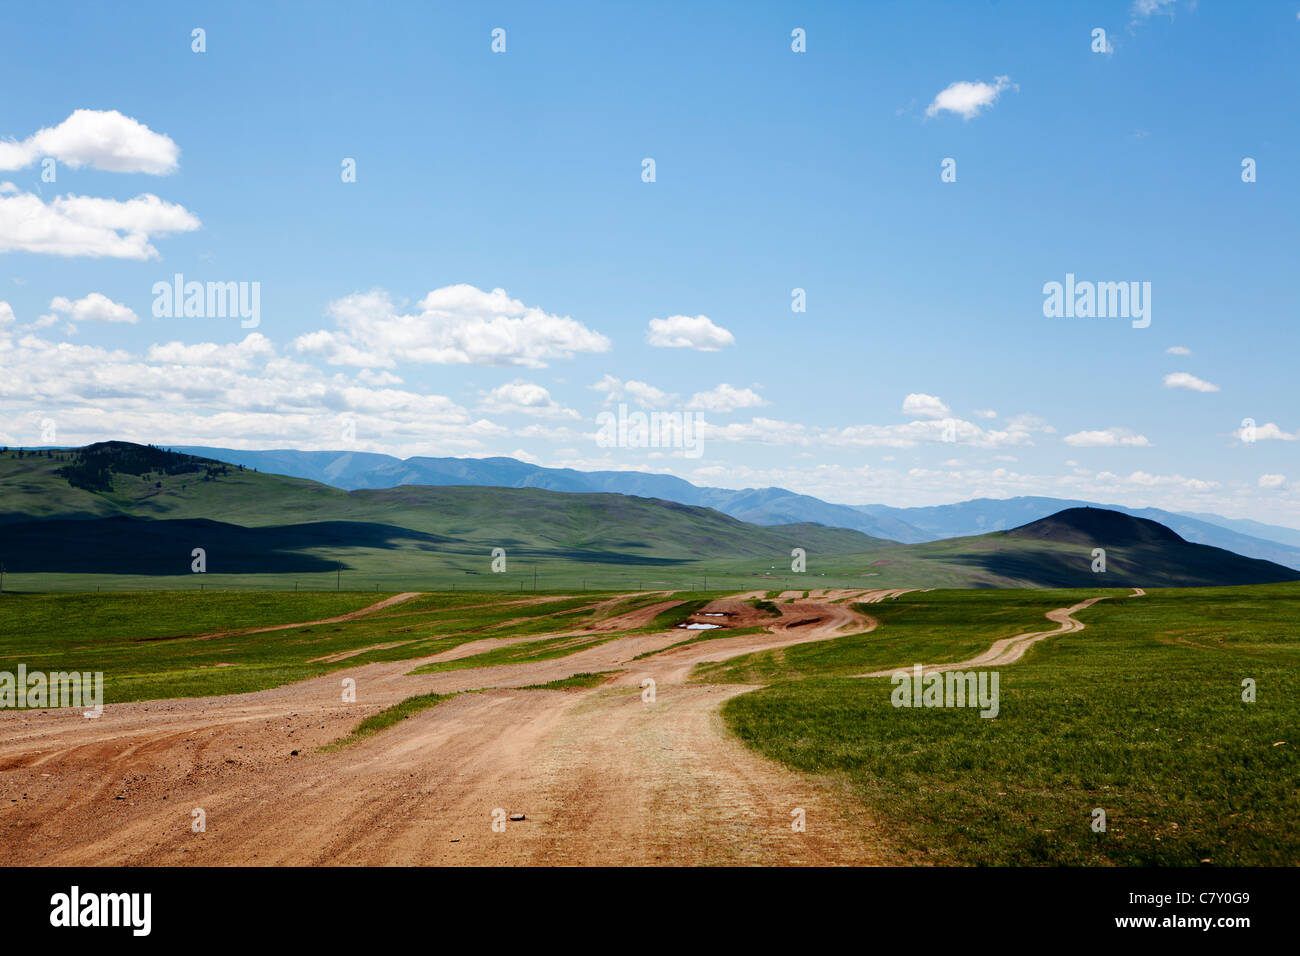 Unpaved road in northern Mongolia. - Stock Image